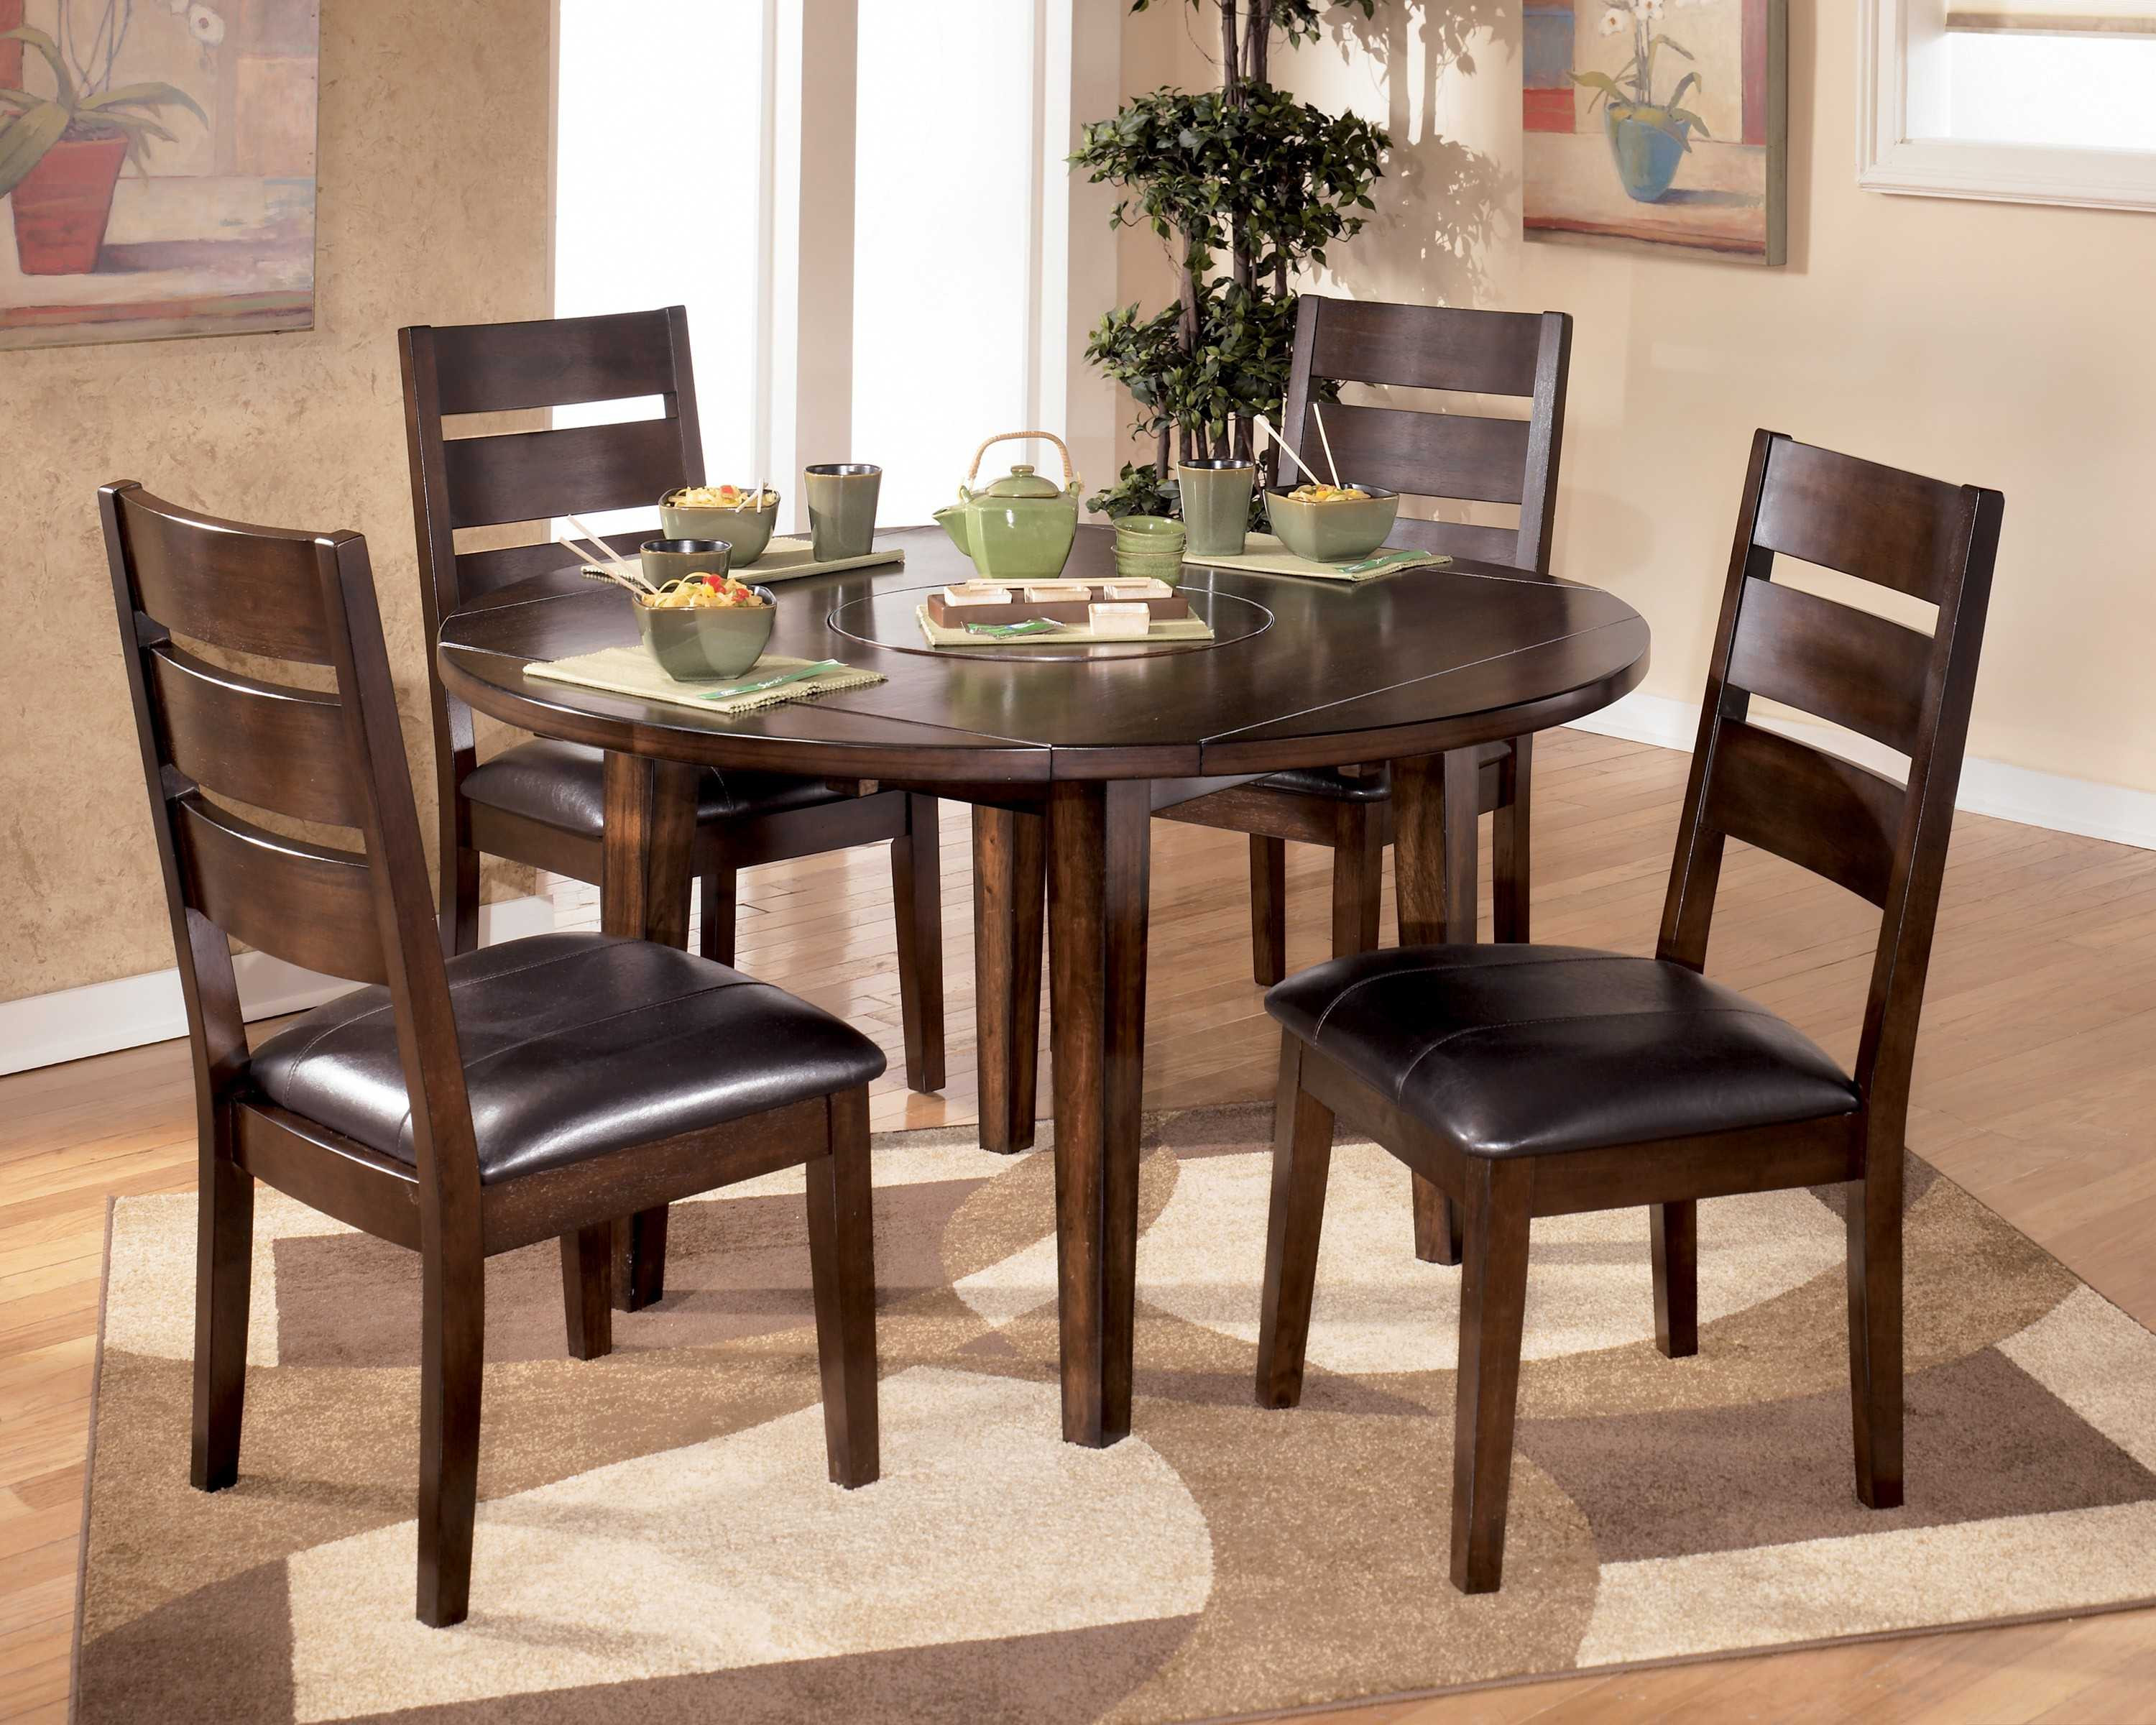 Best ideas about Kitchen & Dining Room Table . Save or Pin Small Round Kitchen Table Sets Ideas With Fascinating Now.